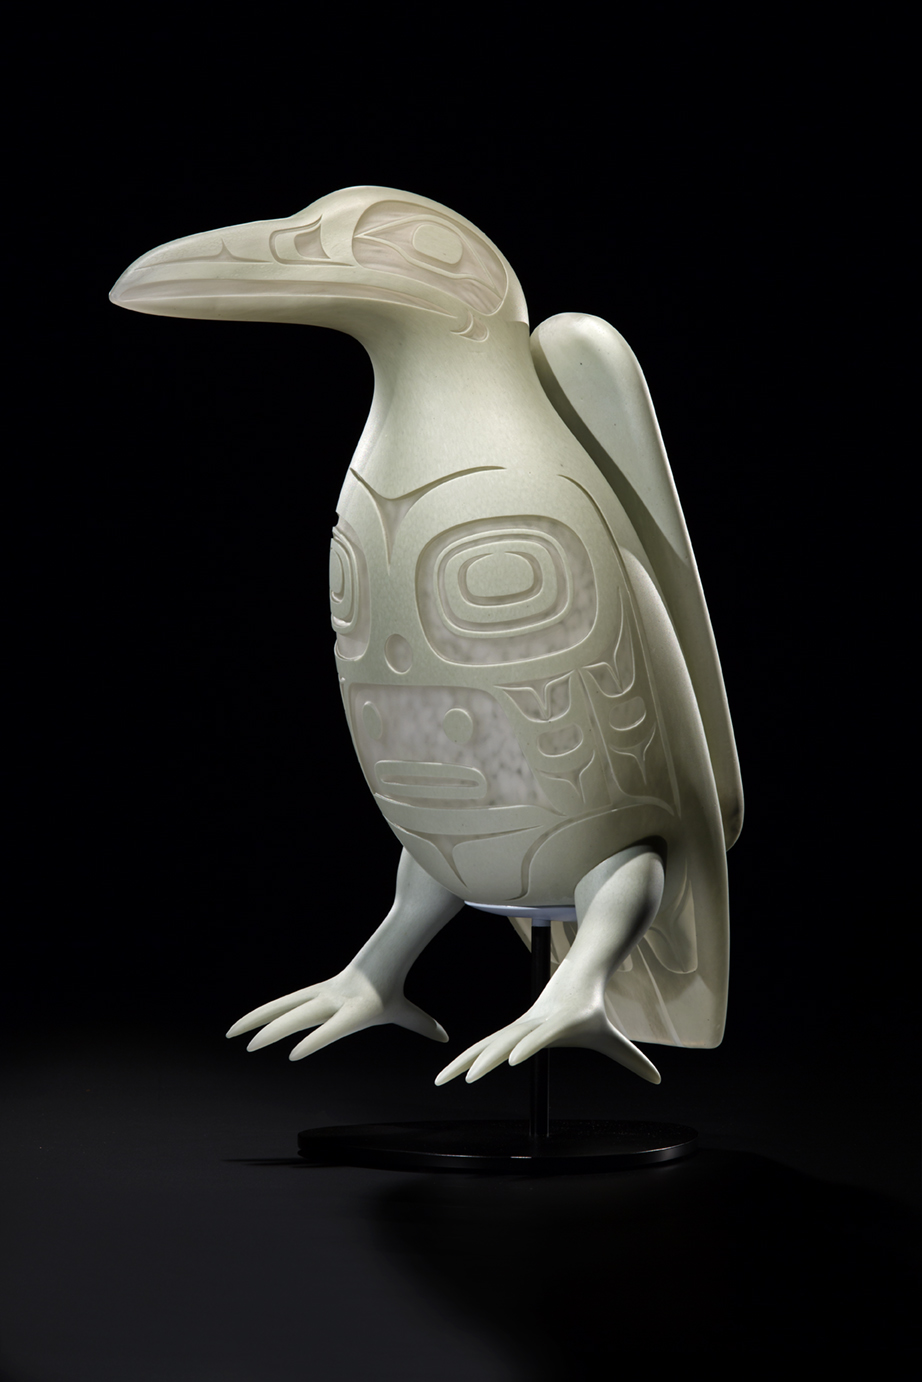 White Raven by Preston Singletary